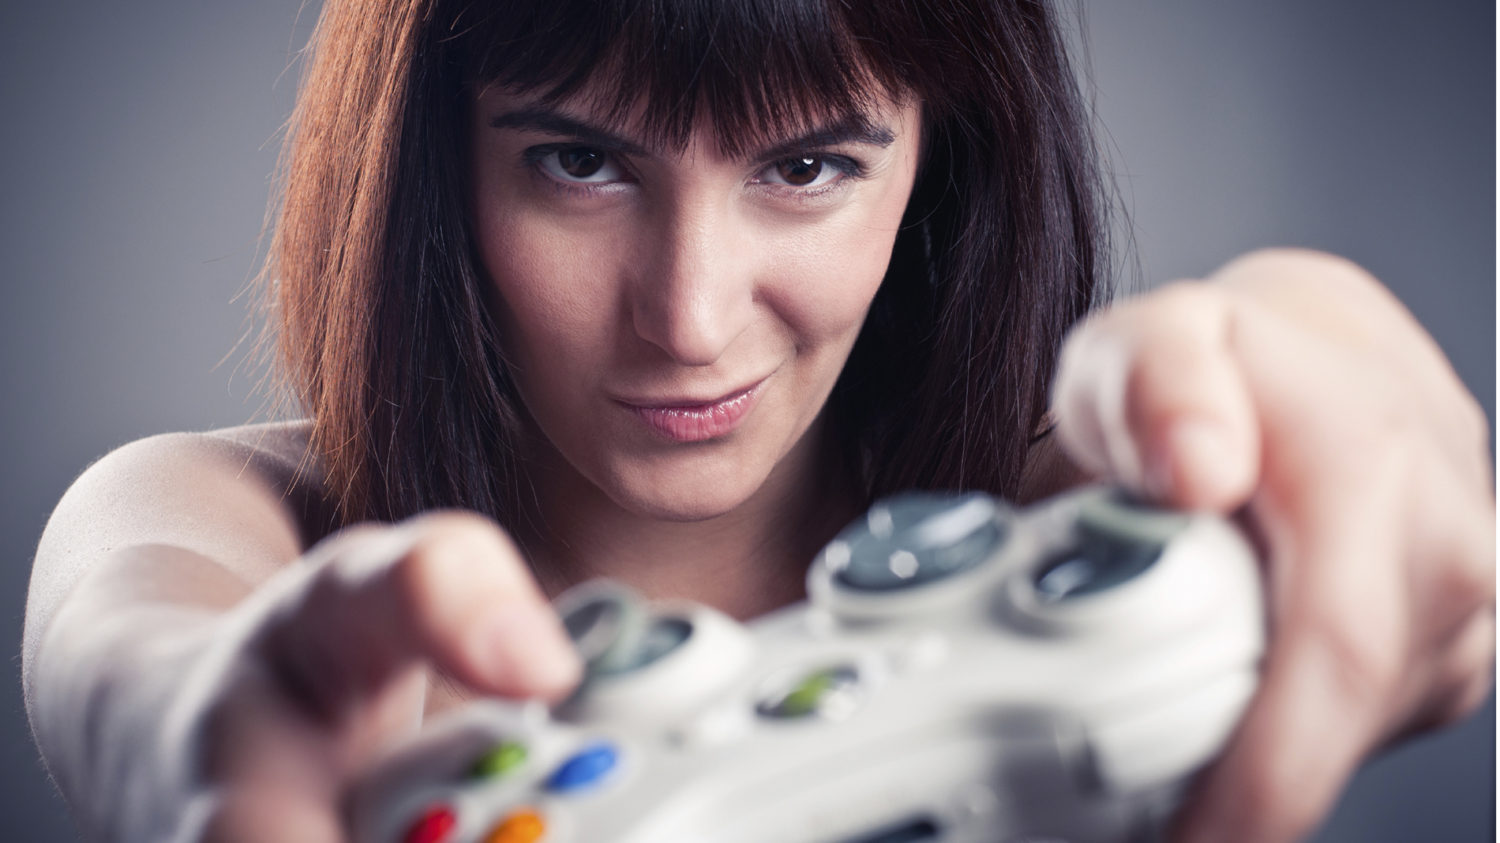 These awesome women are destroying gender stereotypes in the gaming world